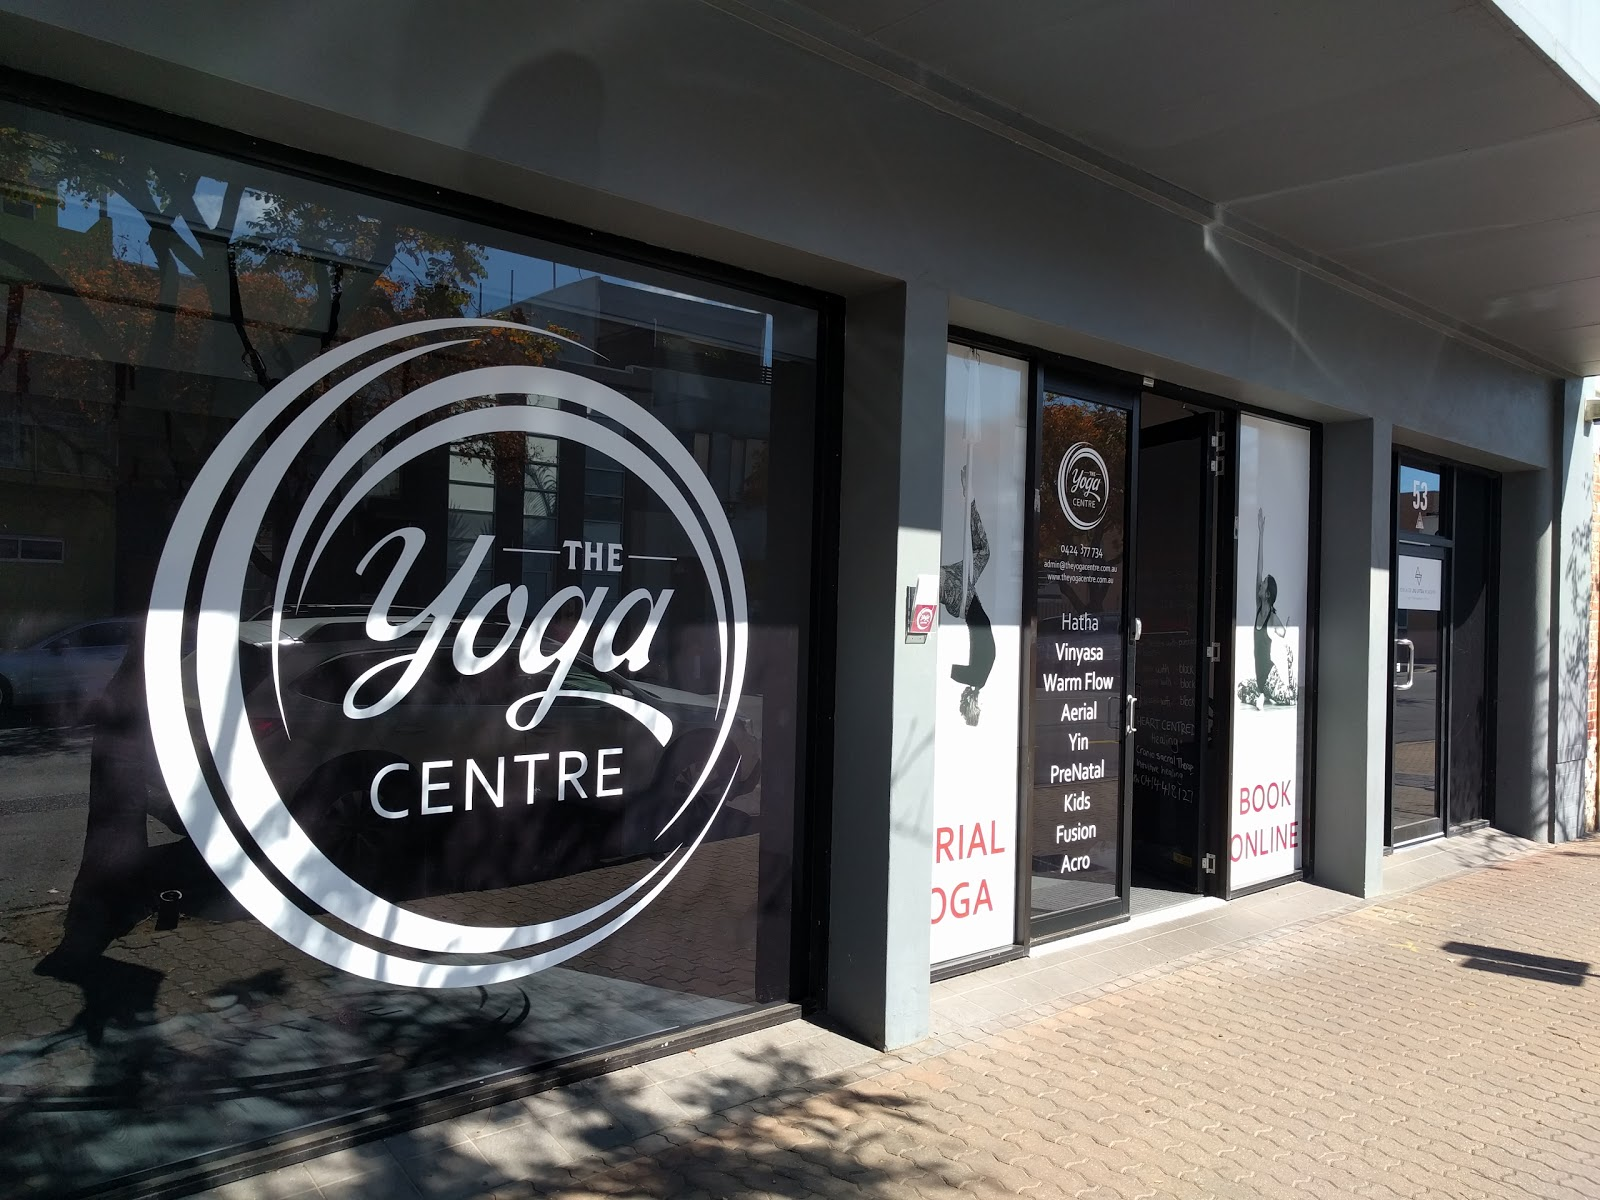 The Yoga Centre Adelaide - photo